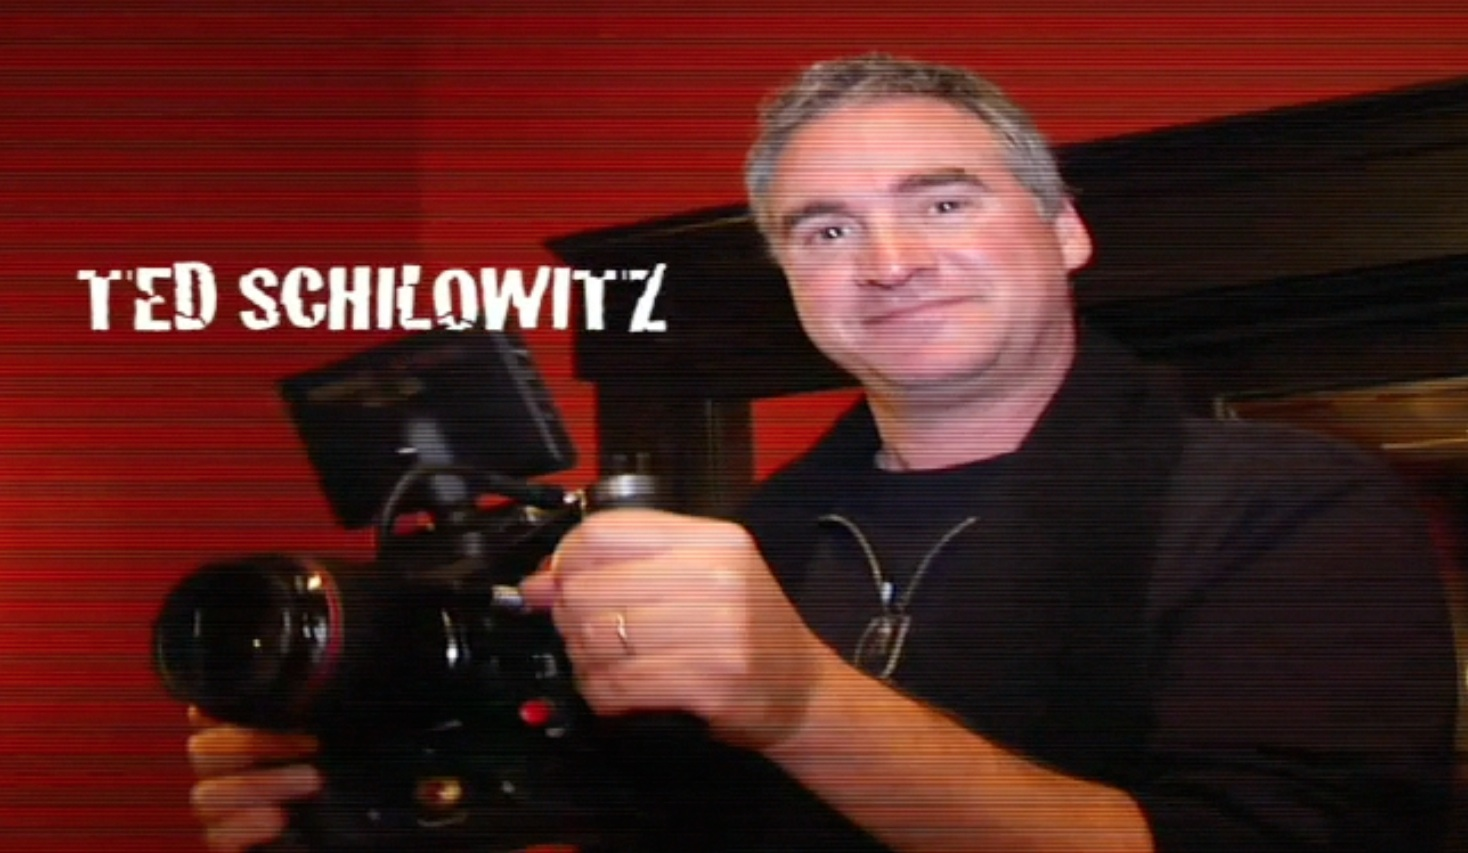 VIDEO PODCAST: Ted Schilowitz (RED Cameras)/Luis Flores Jr (Associate Producer) of Bellflower (USA)